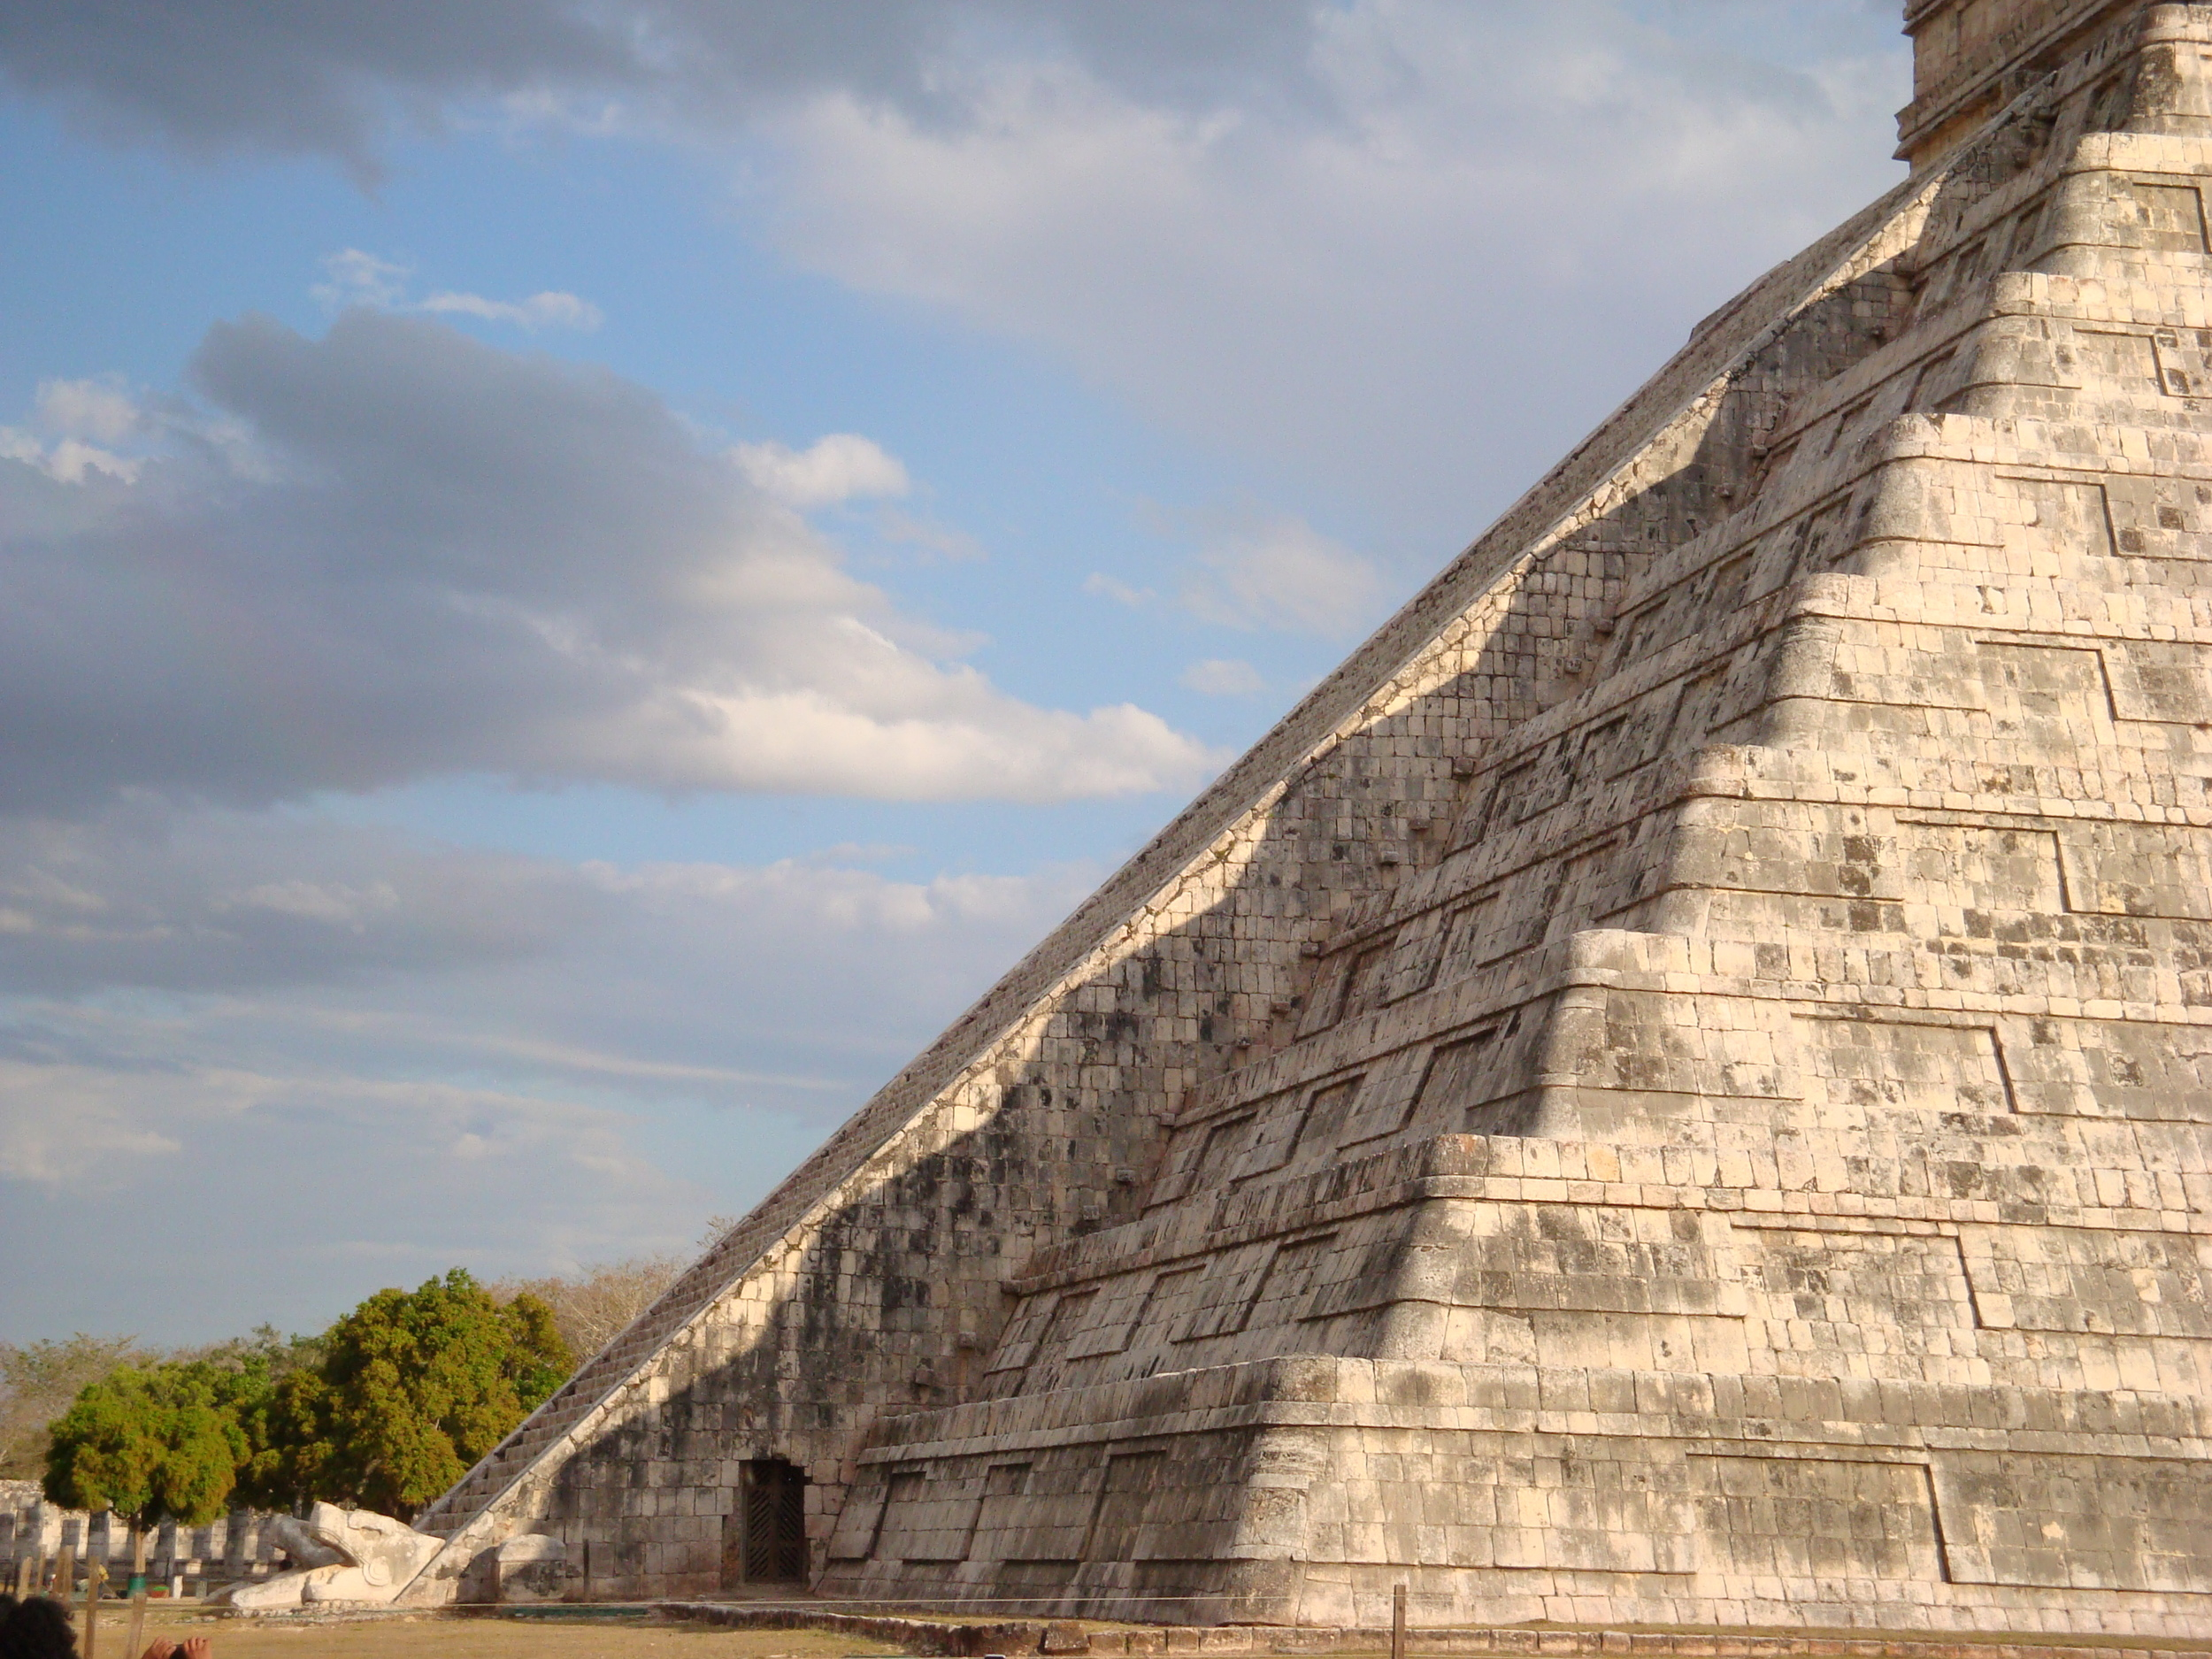 THE MAYAN EQUINOX IN CHICHEN ITZA (PHOTO COURTESY OF WIKIDPEDIA.ORG)